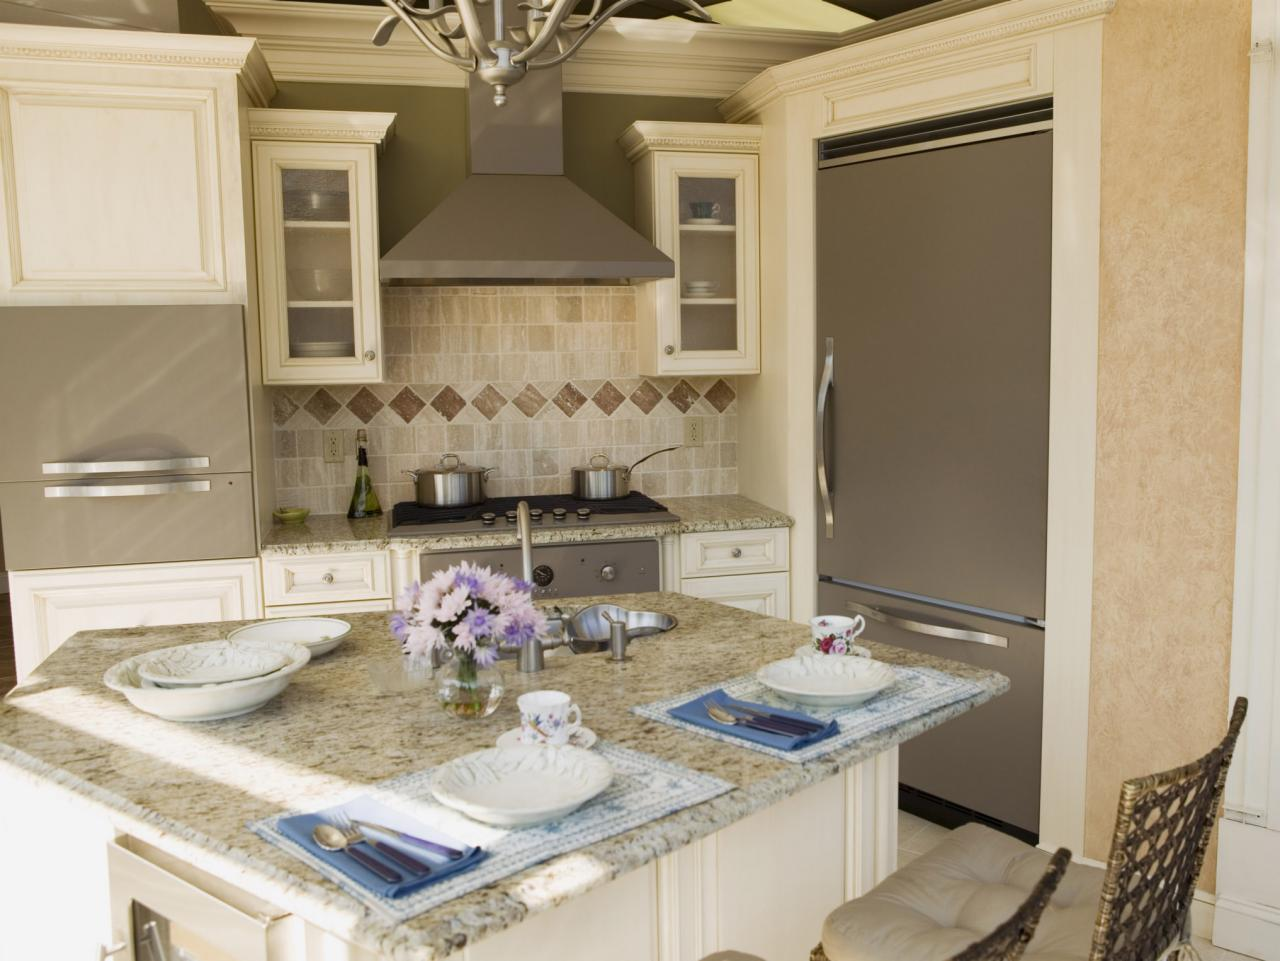 Designed Kitchens. Related To  Kitchen Design High Style in a End HGTV